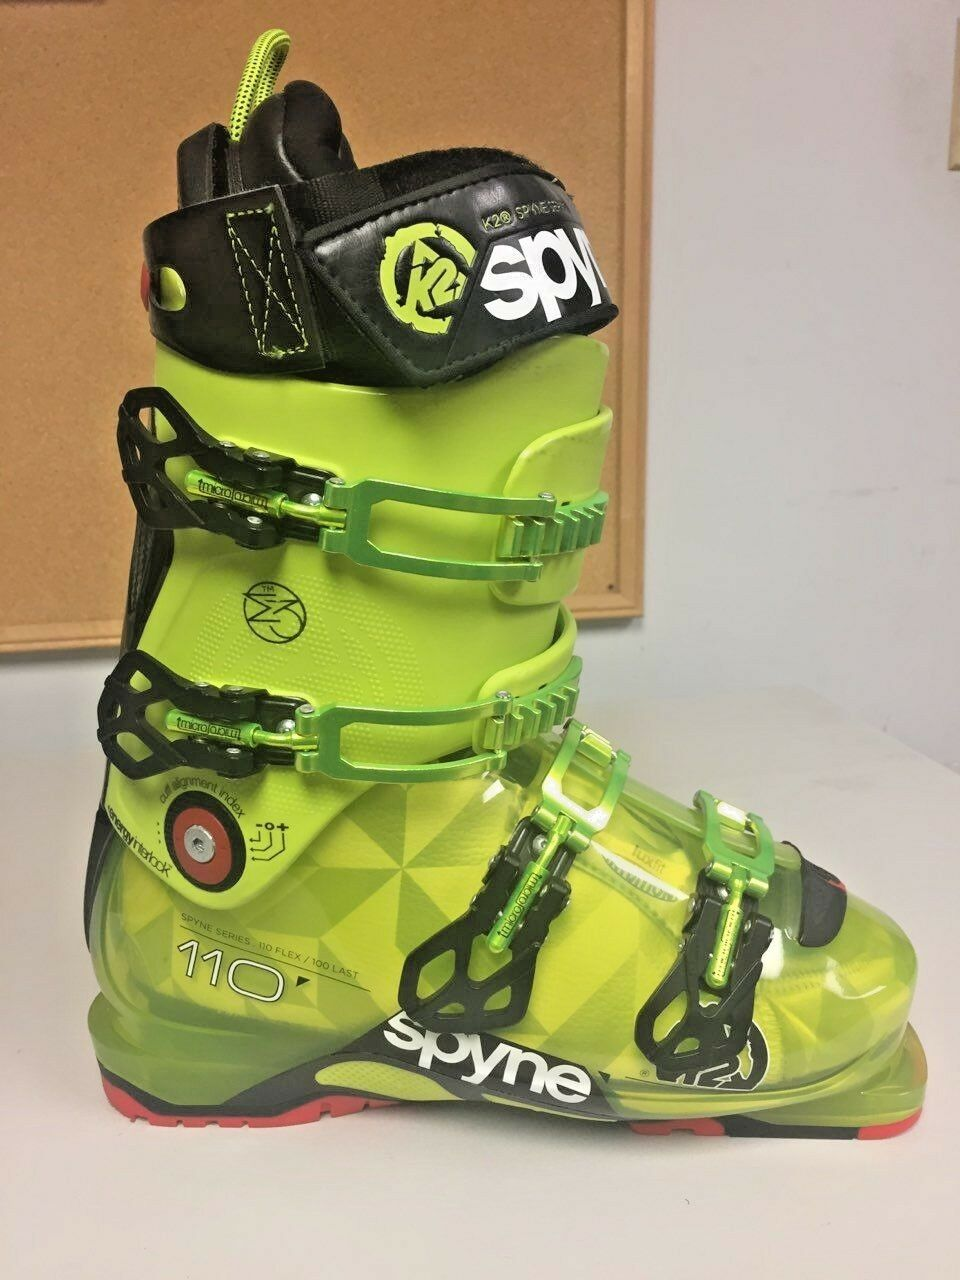 NEW K2 Spyne  110 Flex Ski Boots Size 29.5  low-key luxury connotation